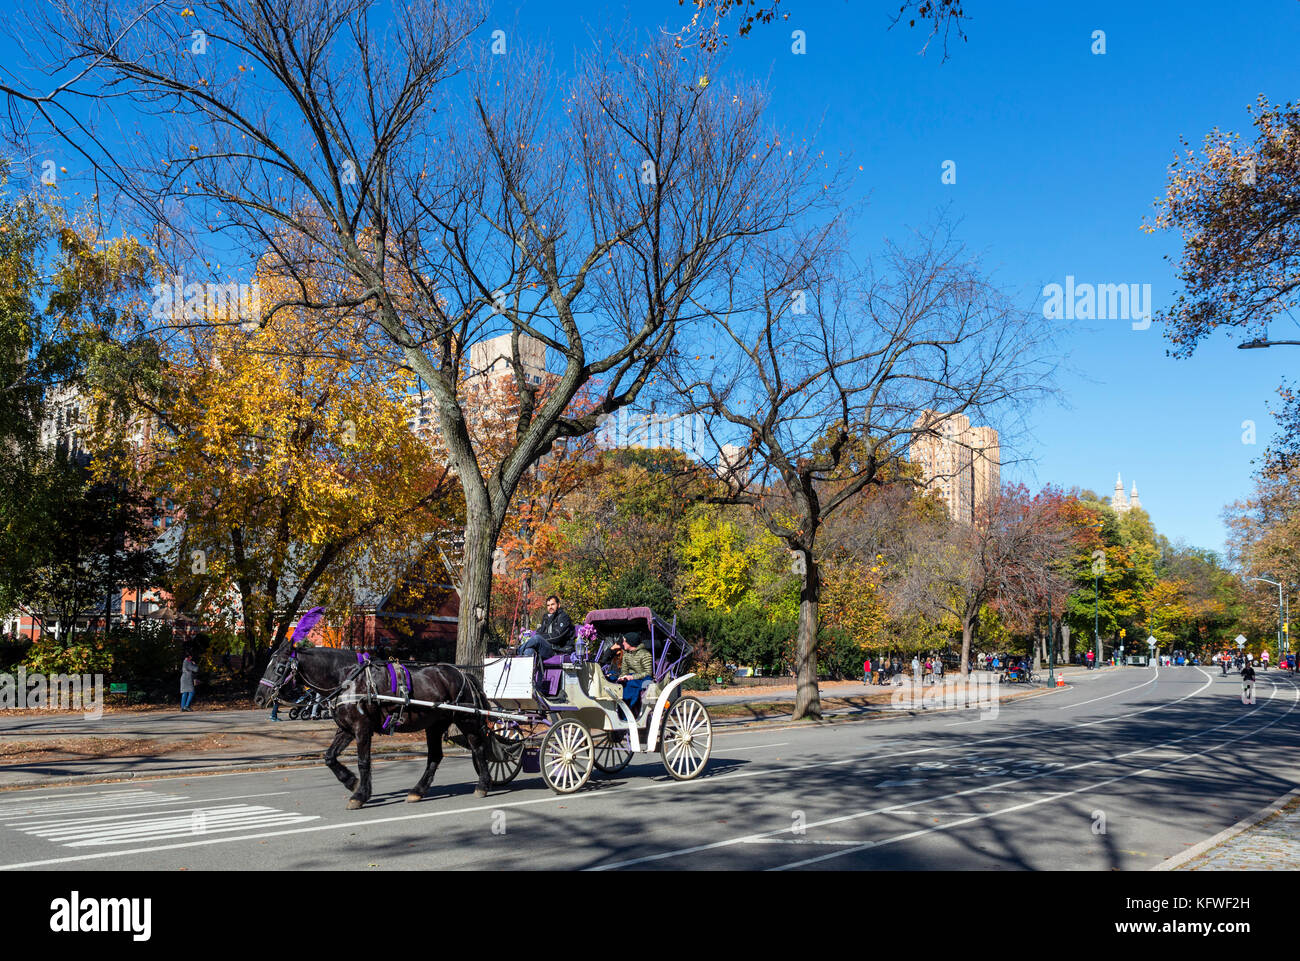 Horse and carriage ride on West Drive in Central Park, New York City, NY, USA - Stock Image